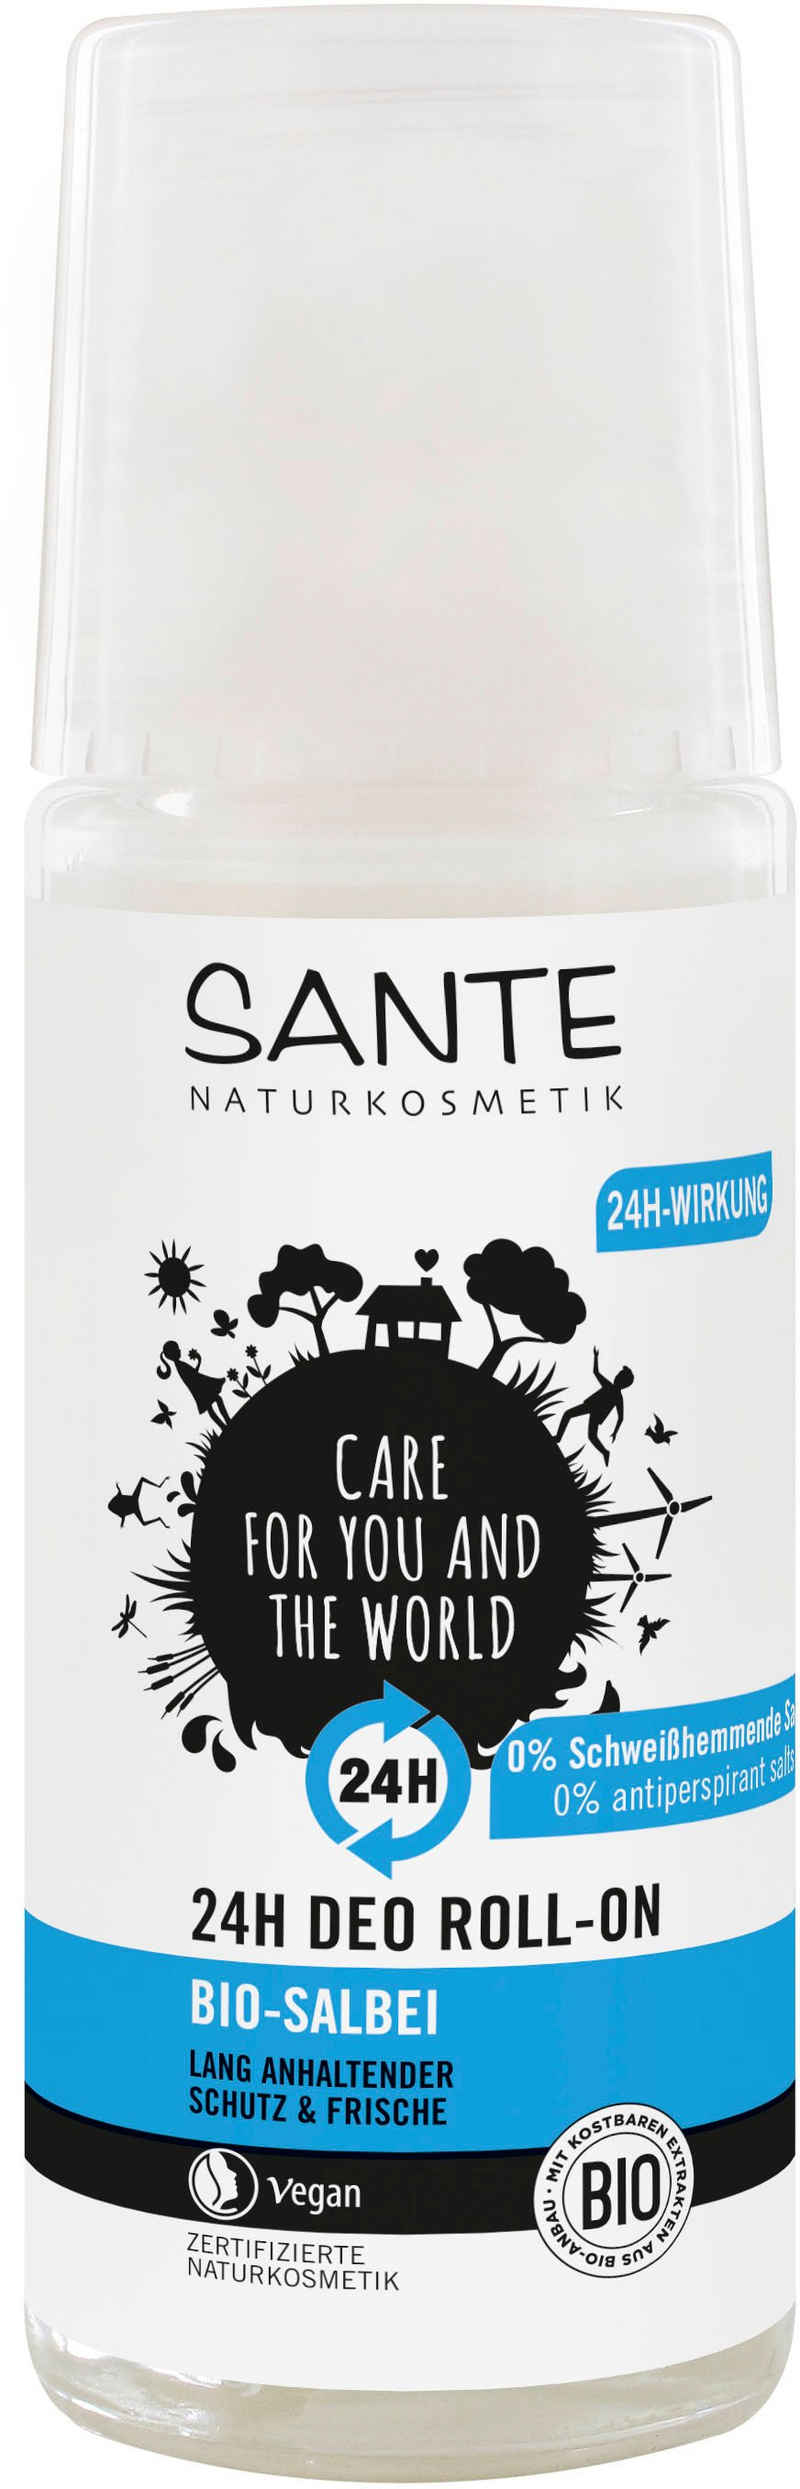 SANTE Deo-Roller »Deo Roll-on 24H«